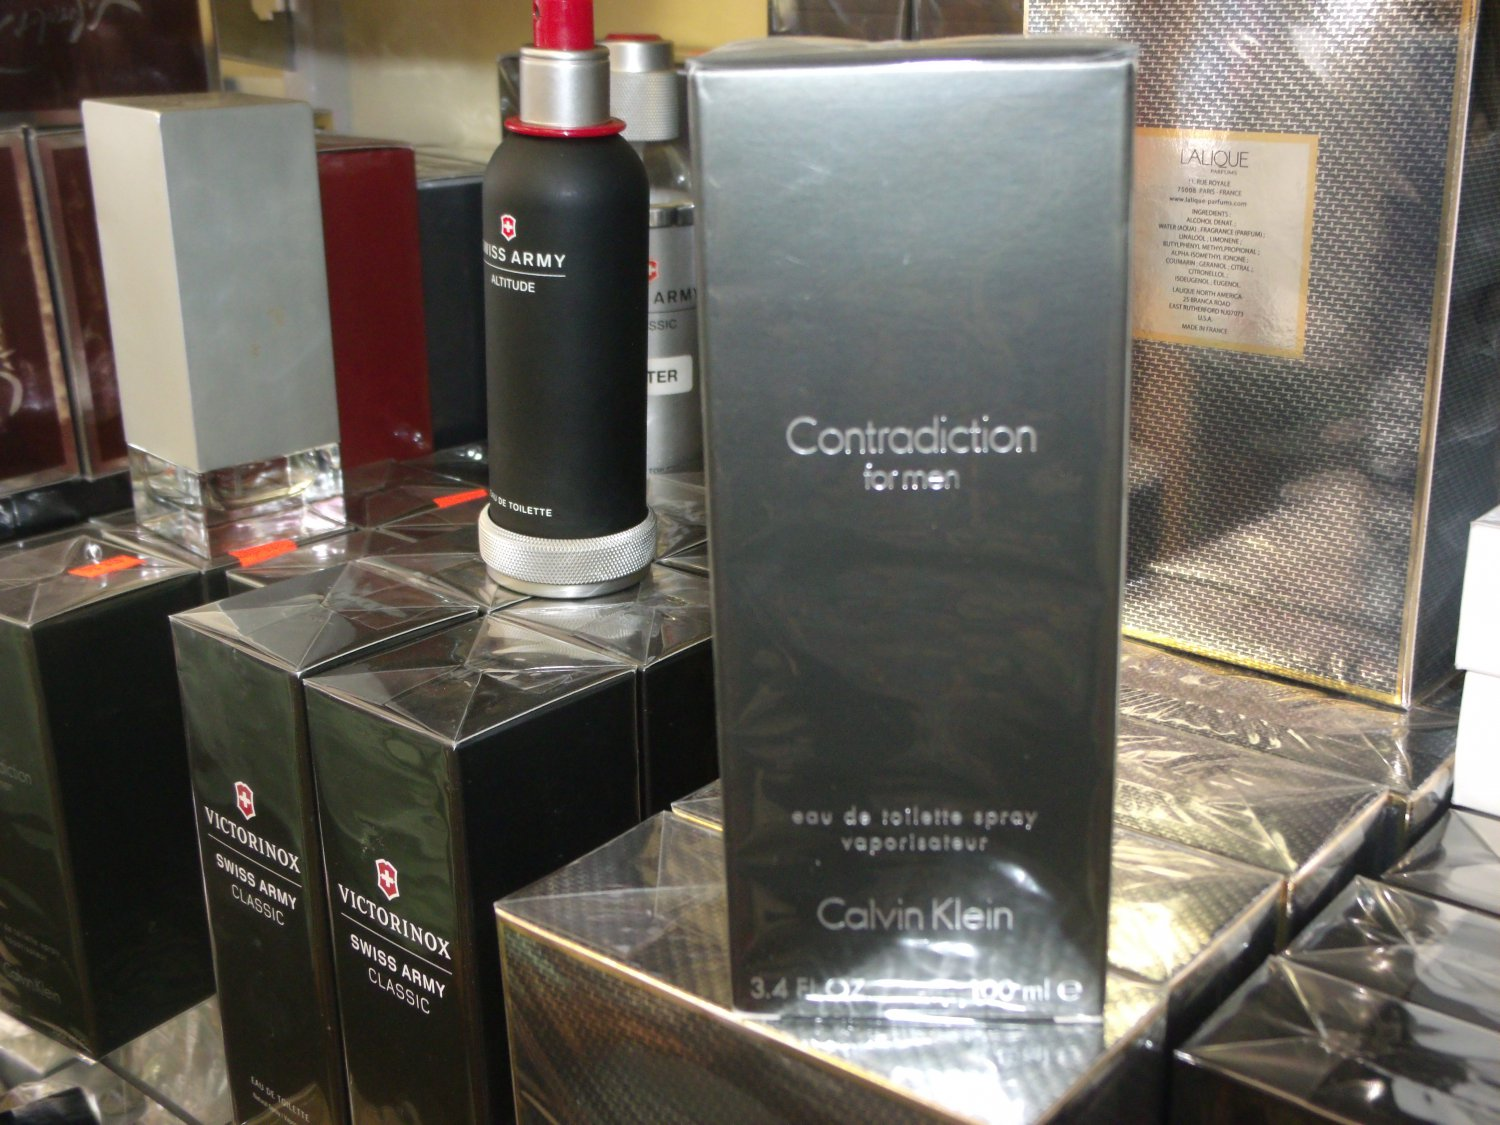 Contradiction By Calvin Klein 3.4 Fl.Oz EDT 100 ml for men